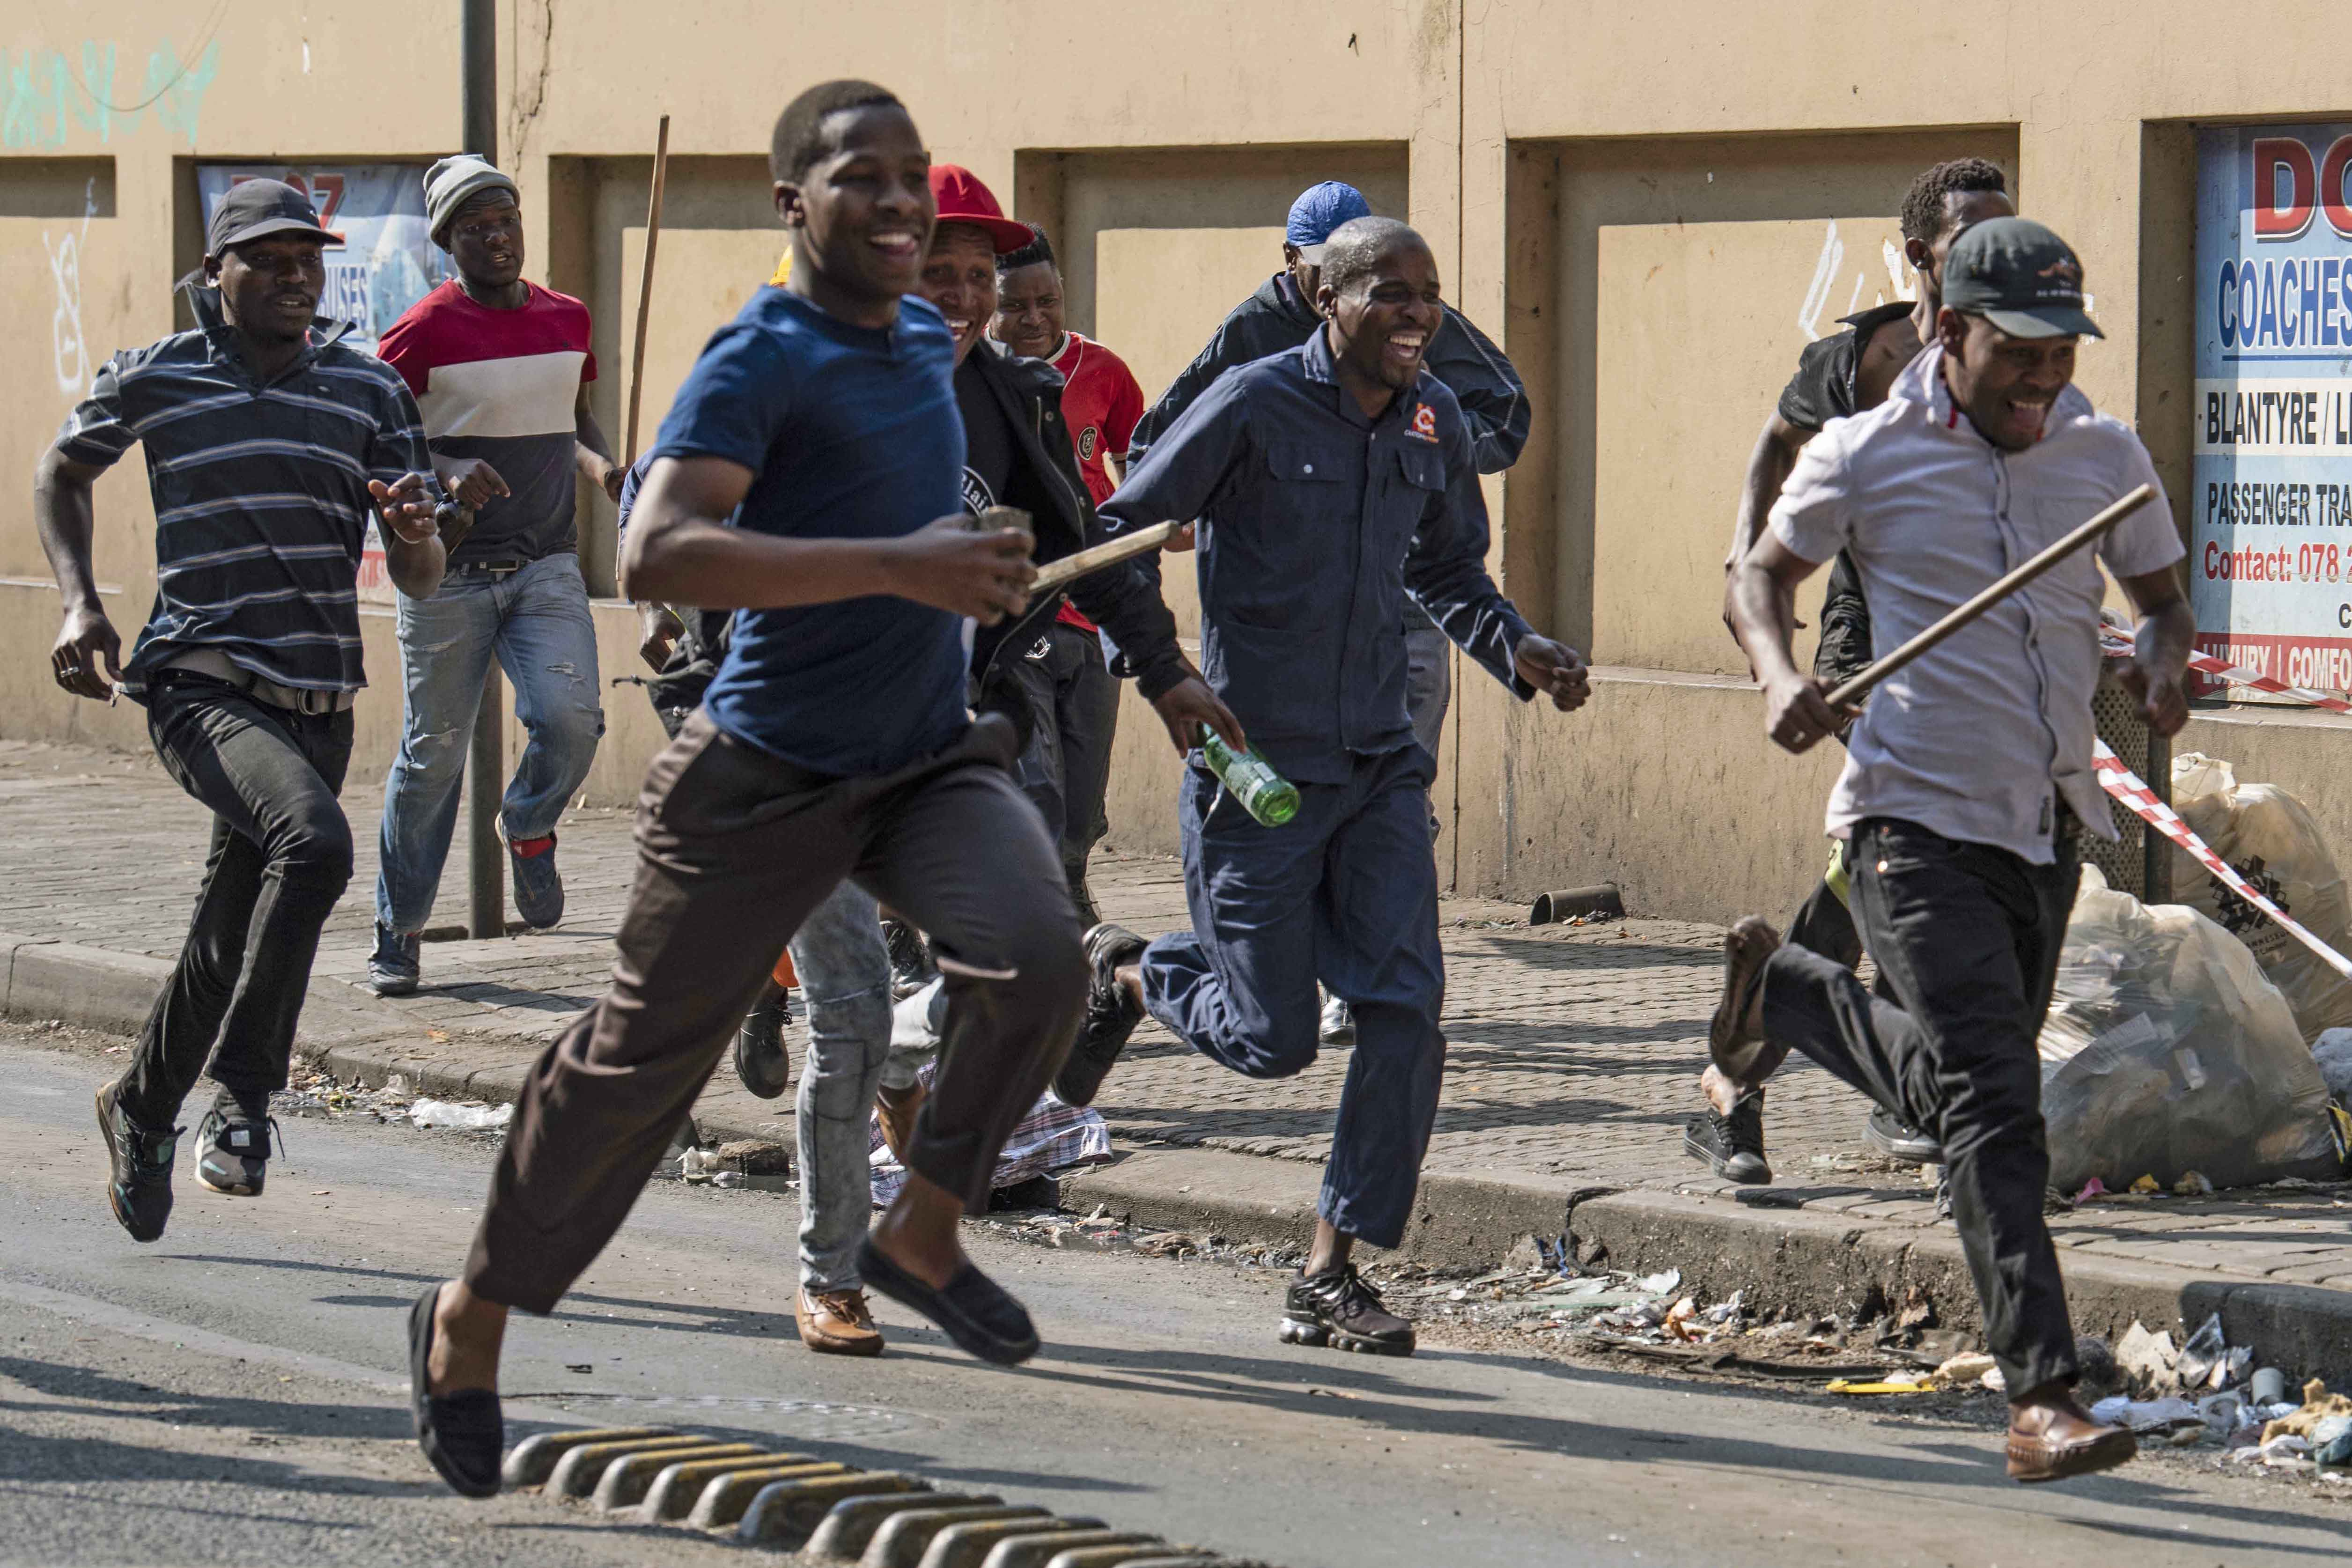 7 August 2019: Looters run through central Johannesburg after police opened fire with rubber bullets. A police operation targeting foreign-owned businesses in the Fashion District led to protesters looting stores in the central business district.